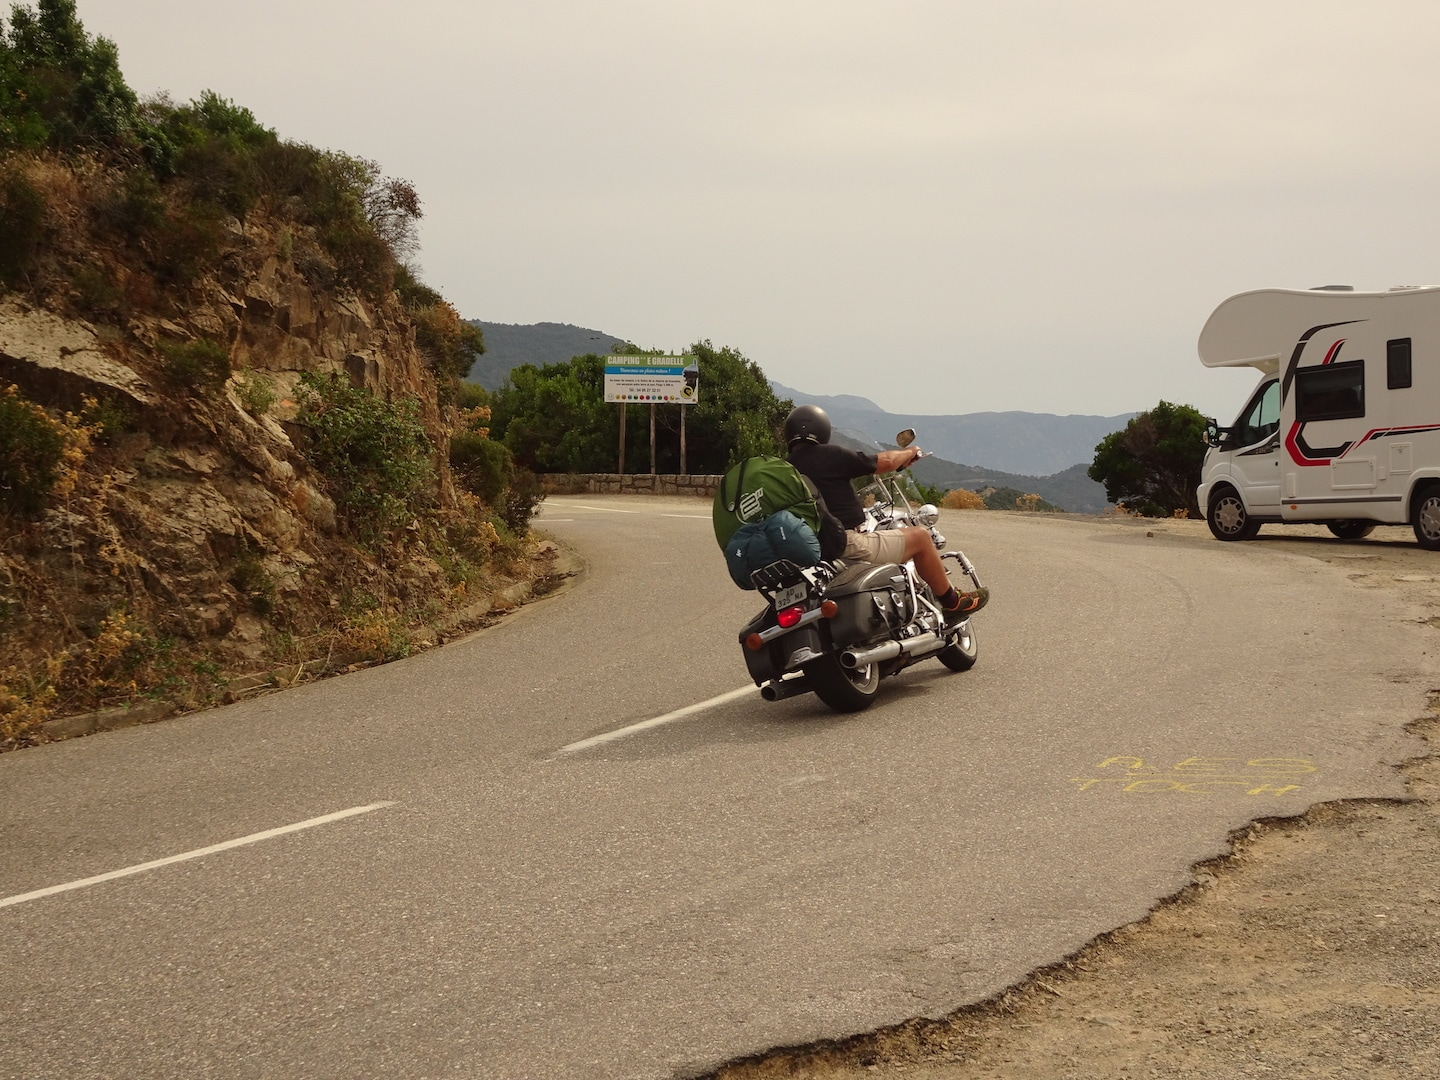 Riserblog andreas sommer motorcycle corsica 16